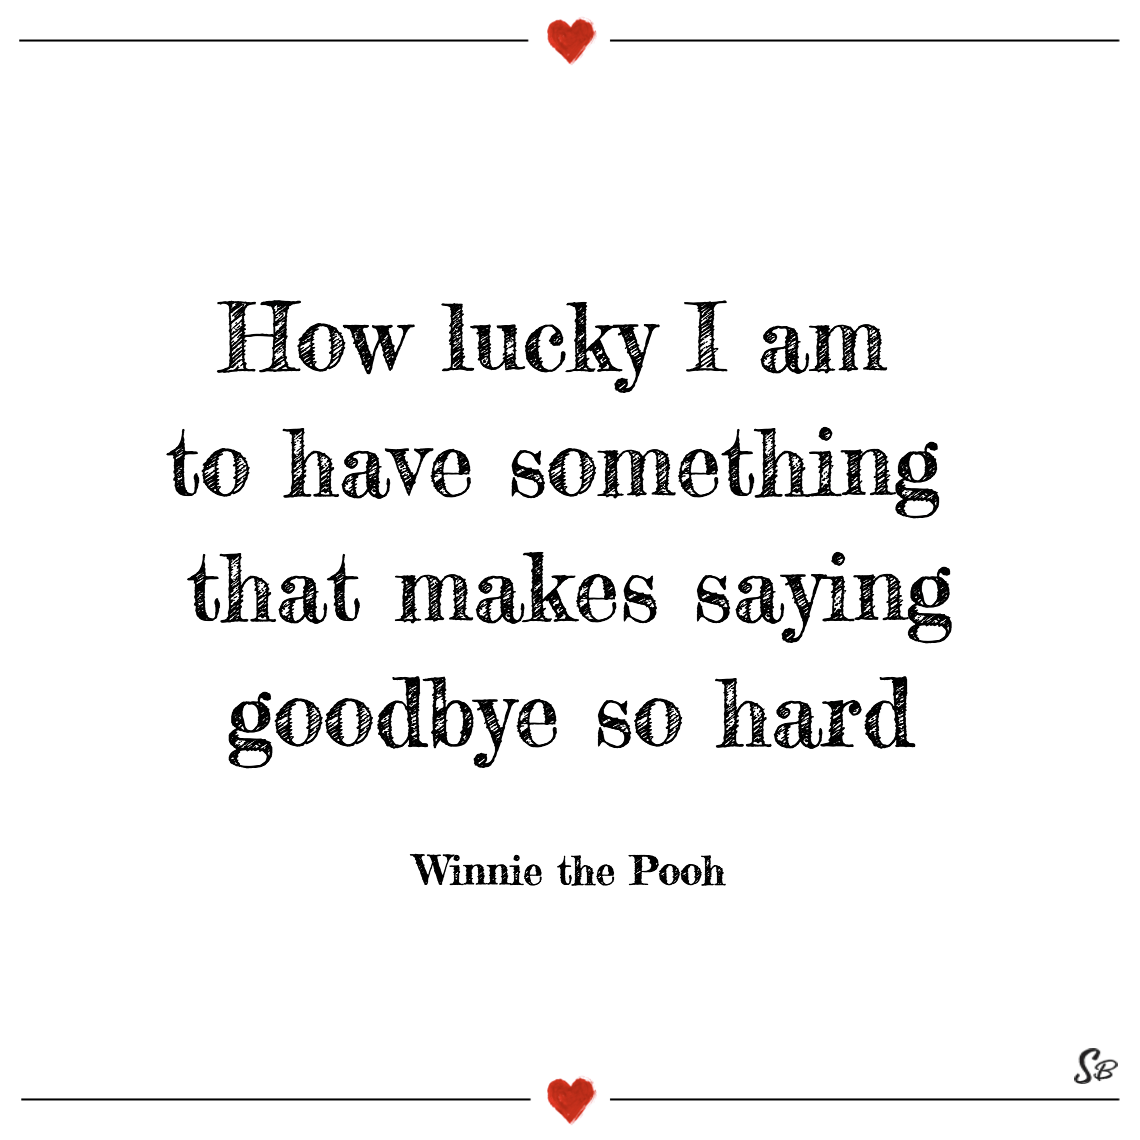 How lucky i am to have something that makes saying goodbye so hard winnie the pooh